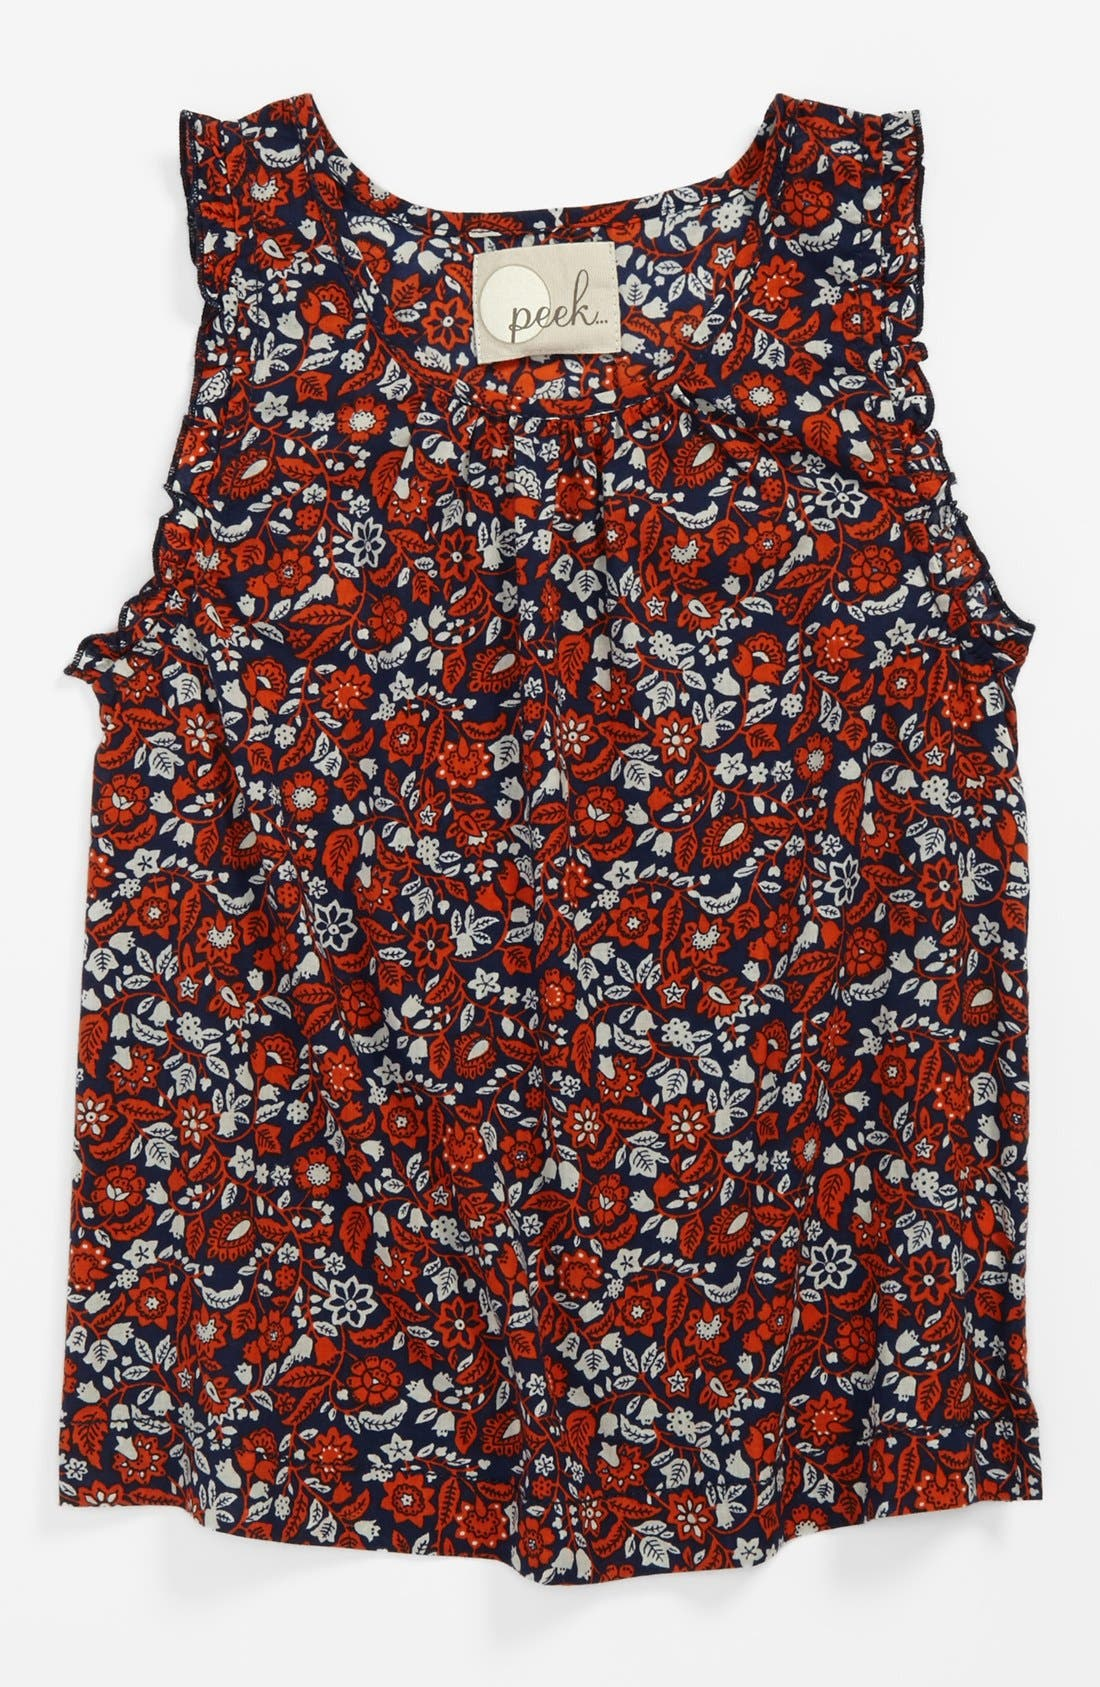 Main Image - Peek 'Liberty' Top (Toddler Girls, Little Girls & Big Girls)